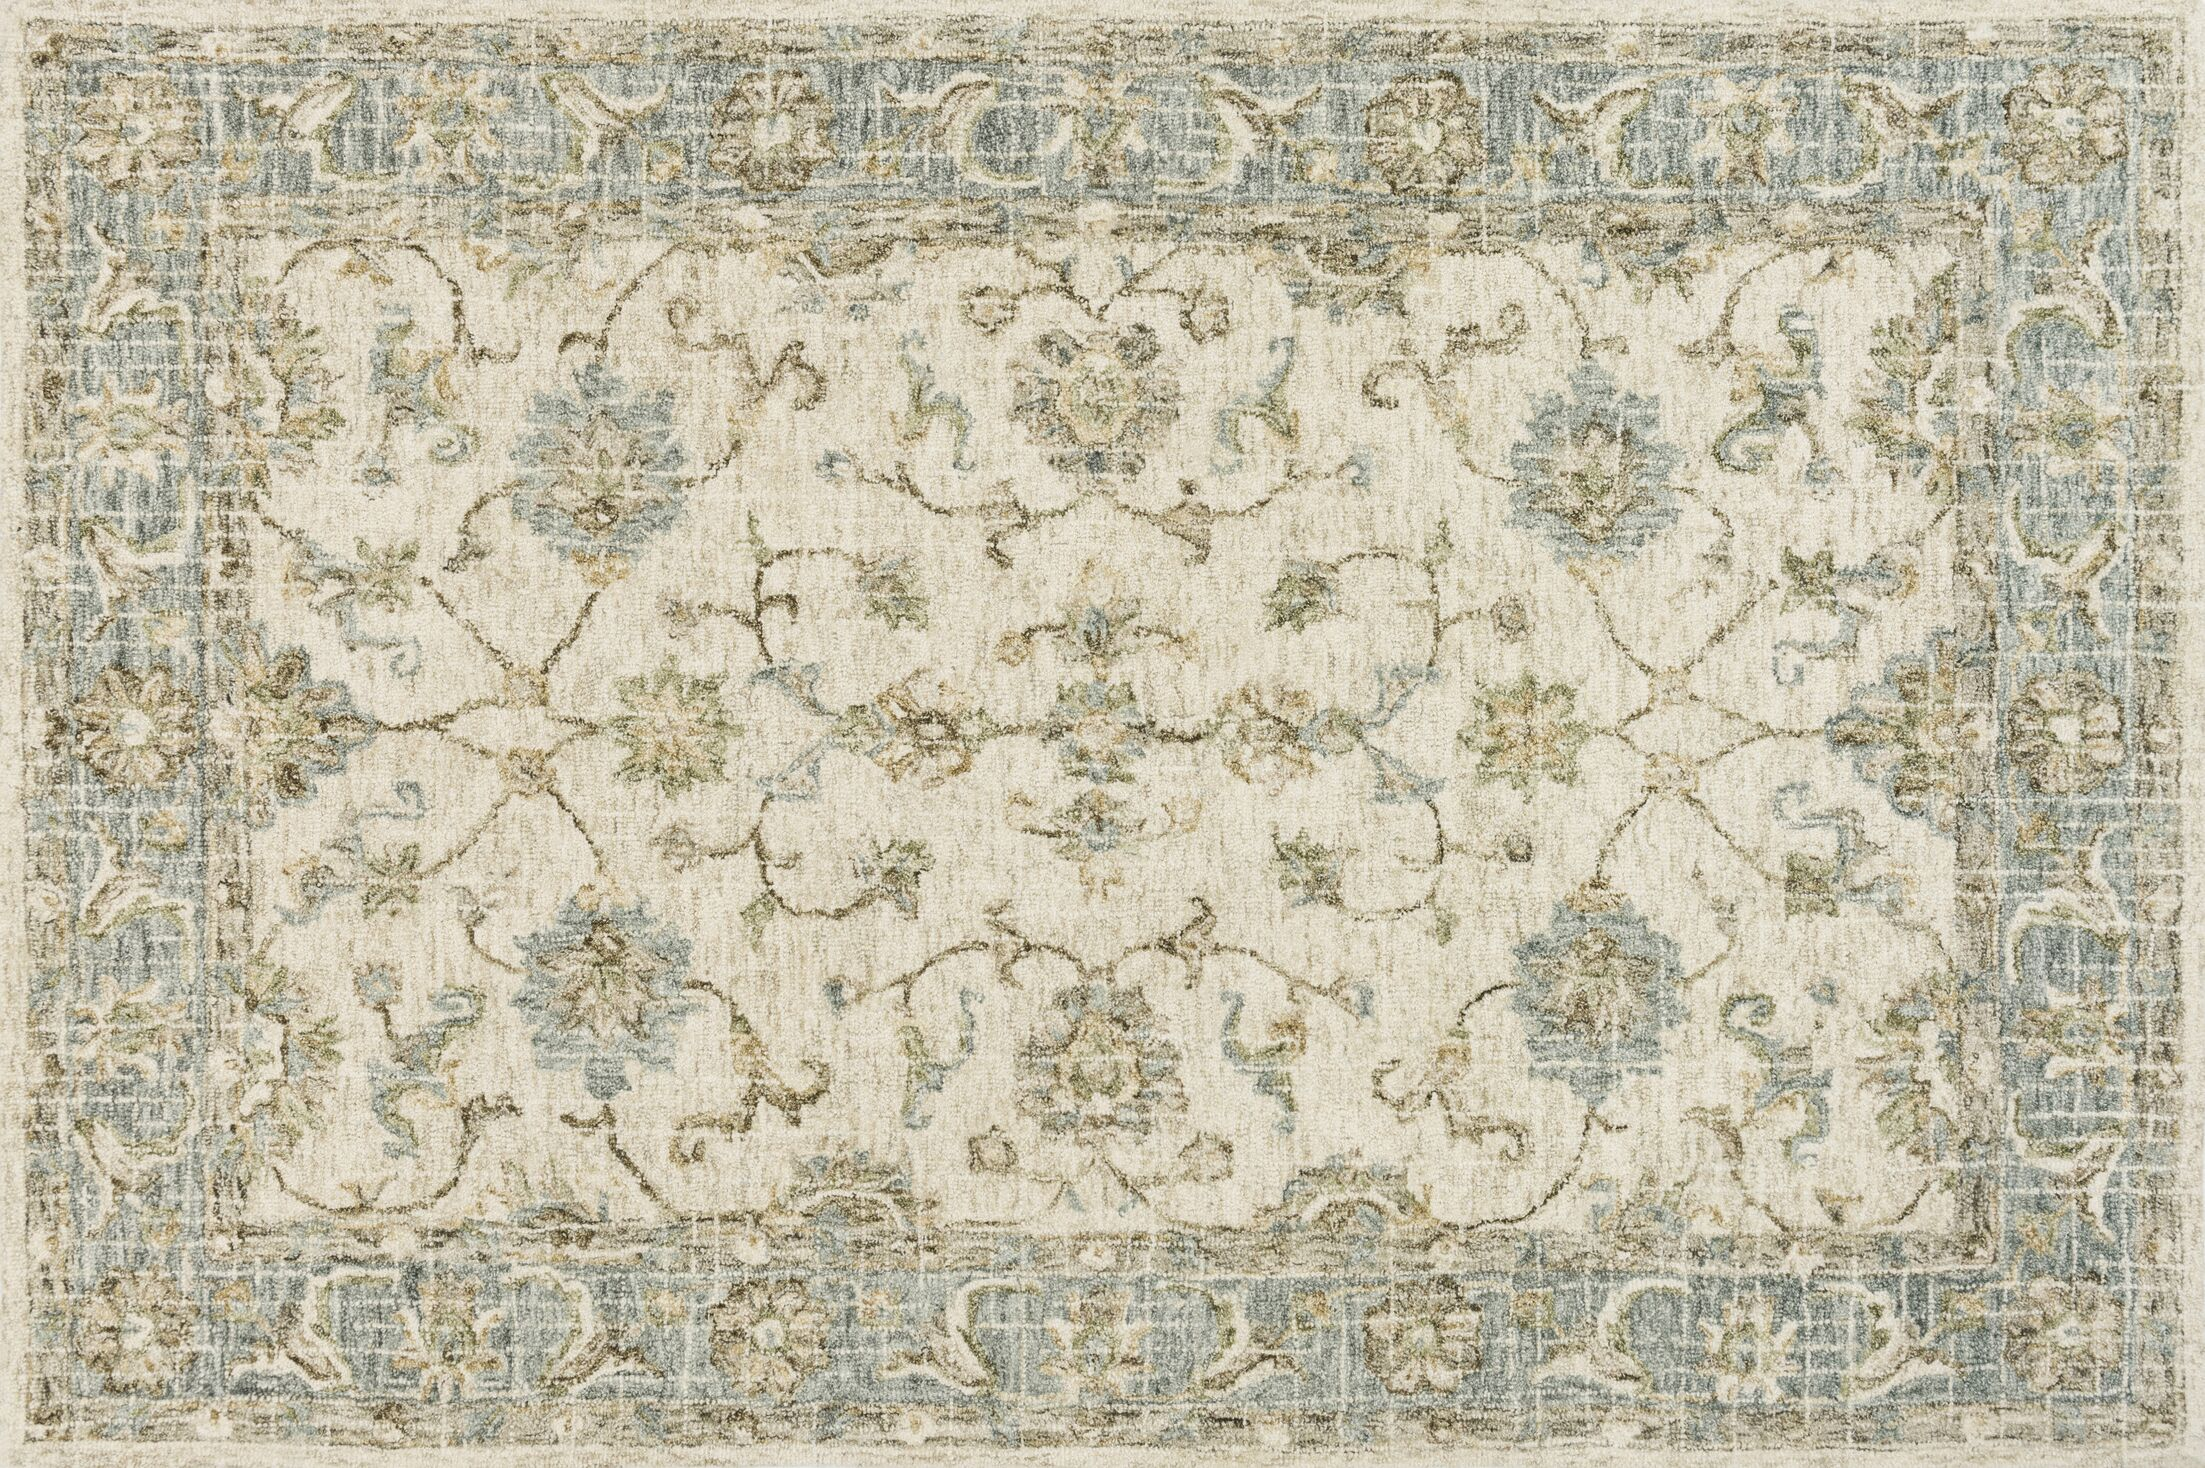 Fitzwater Hand-Hooked Wool Ivory/Spa Area Rug Rug Size: Rectangle 2'6